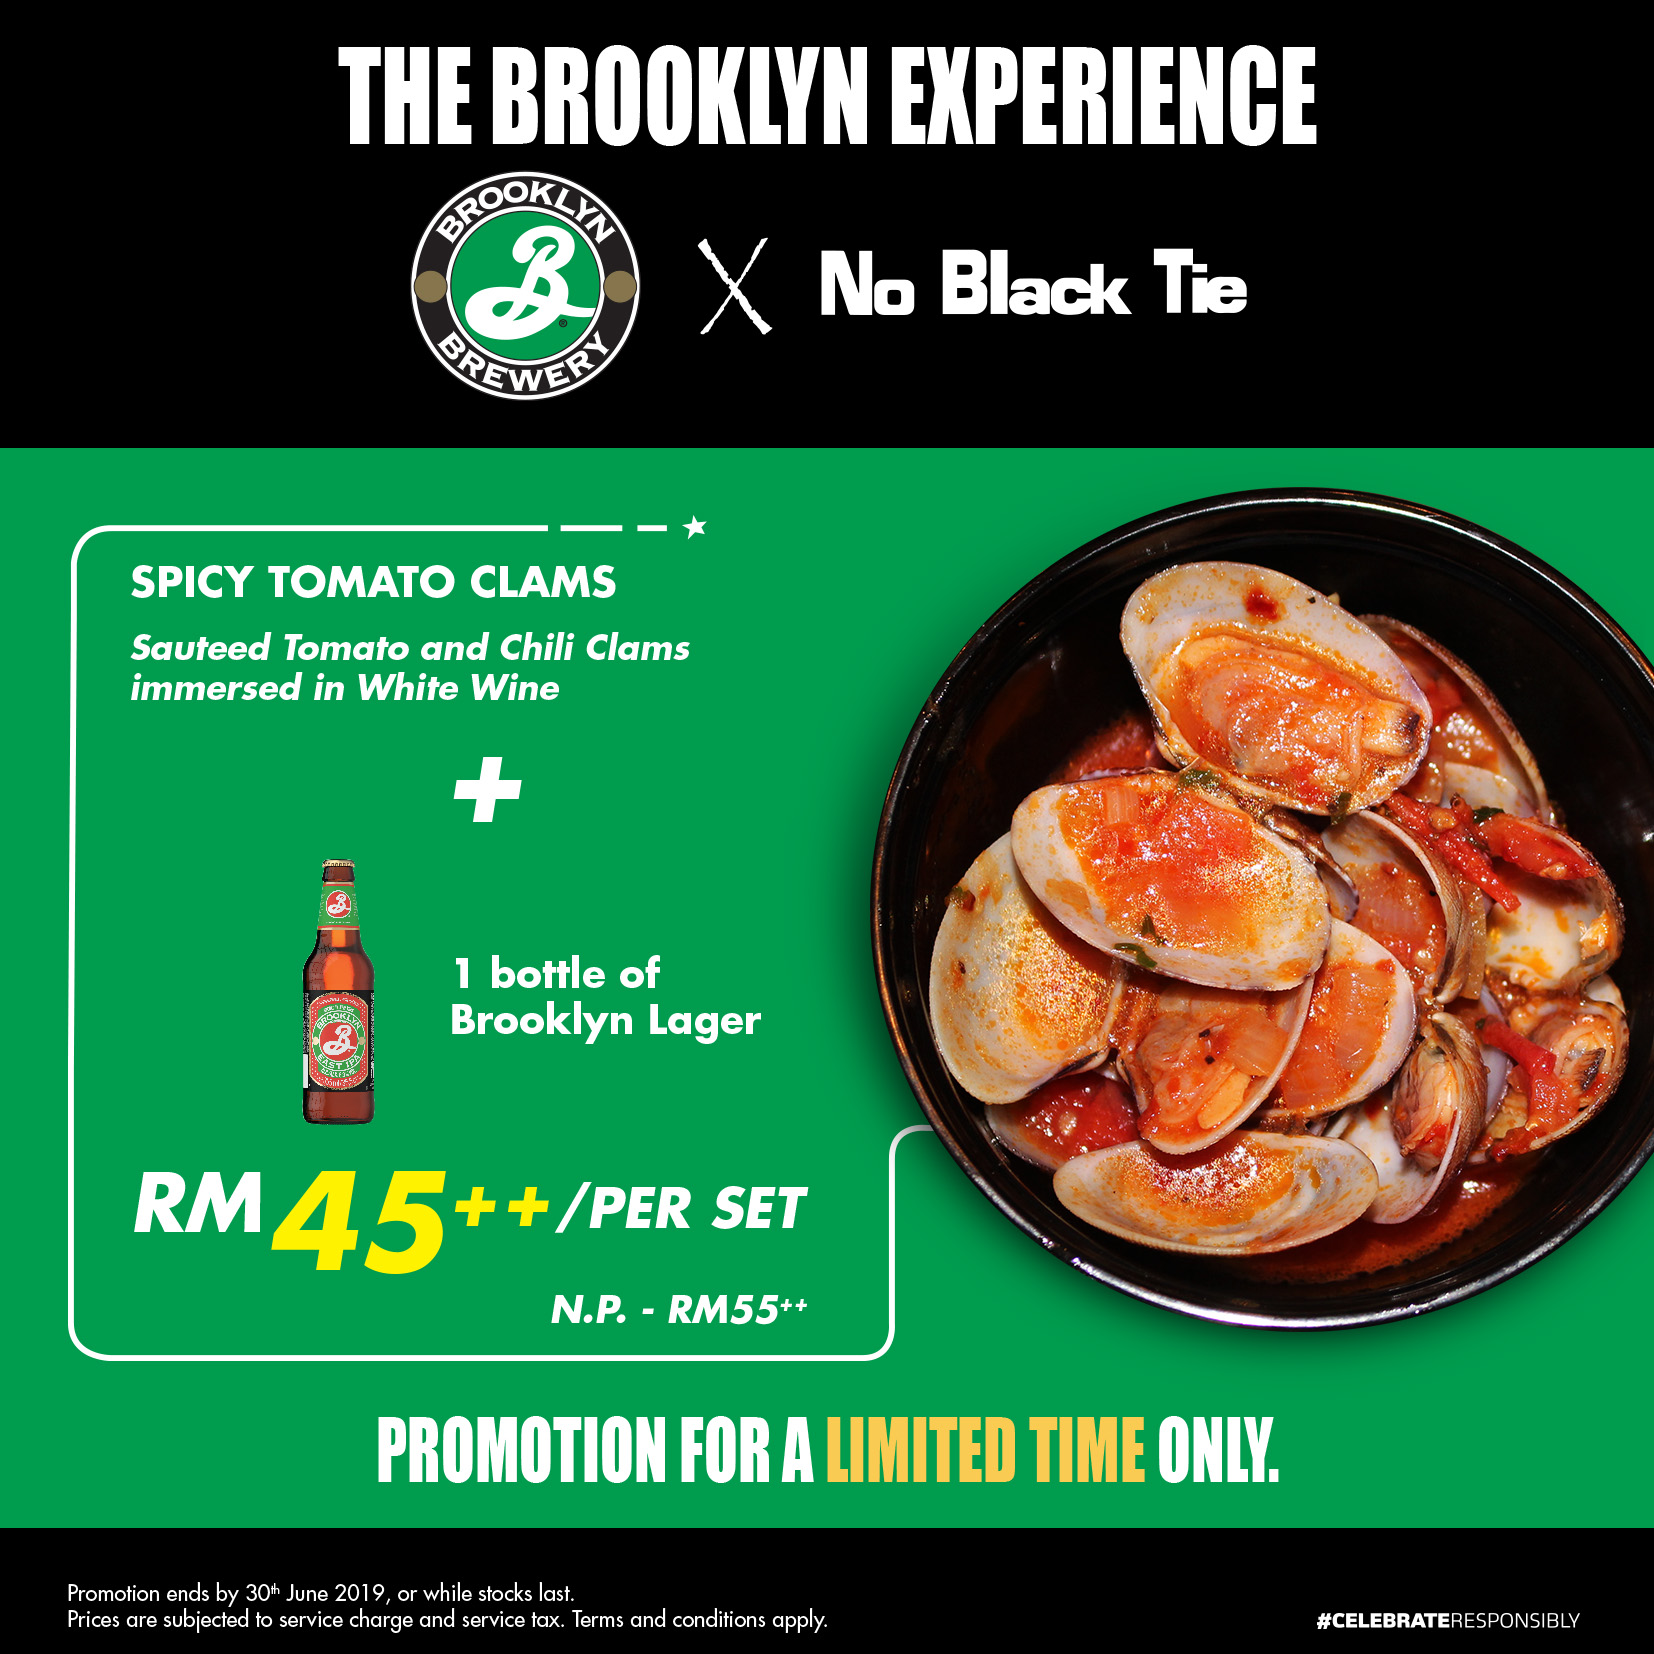 https://i0.wp.com/www.noblacktie.com.my/web/wp-content/uploads/2019/04/Brooklyn-NoBlackTie_FB-Posting_SPICY-TOMATO-CLAMS_1654Wx1654Hpx_V1_FA-REF.jpg?resize=1170%2C2319&ssl=1